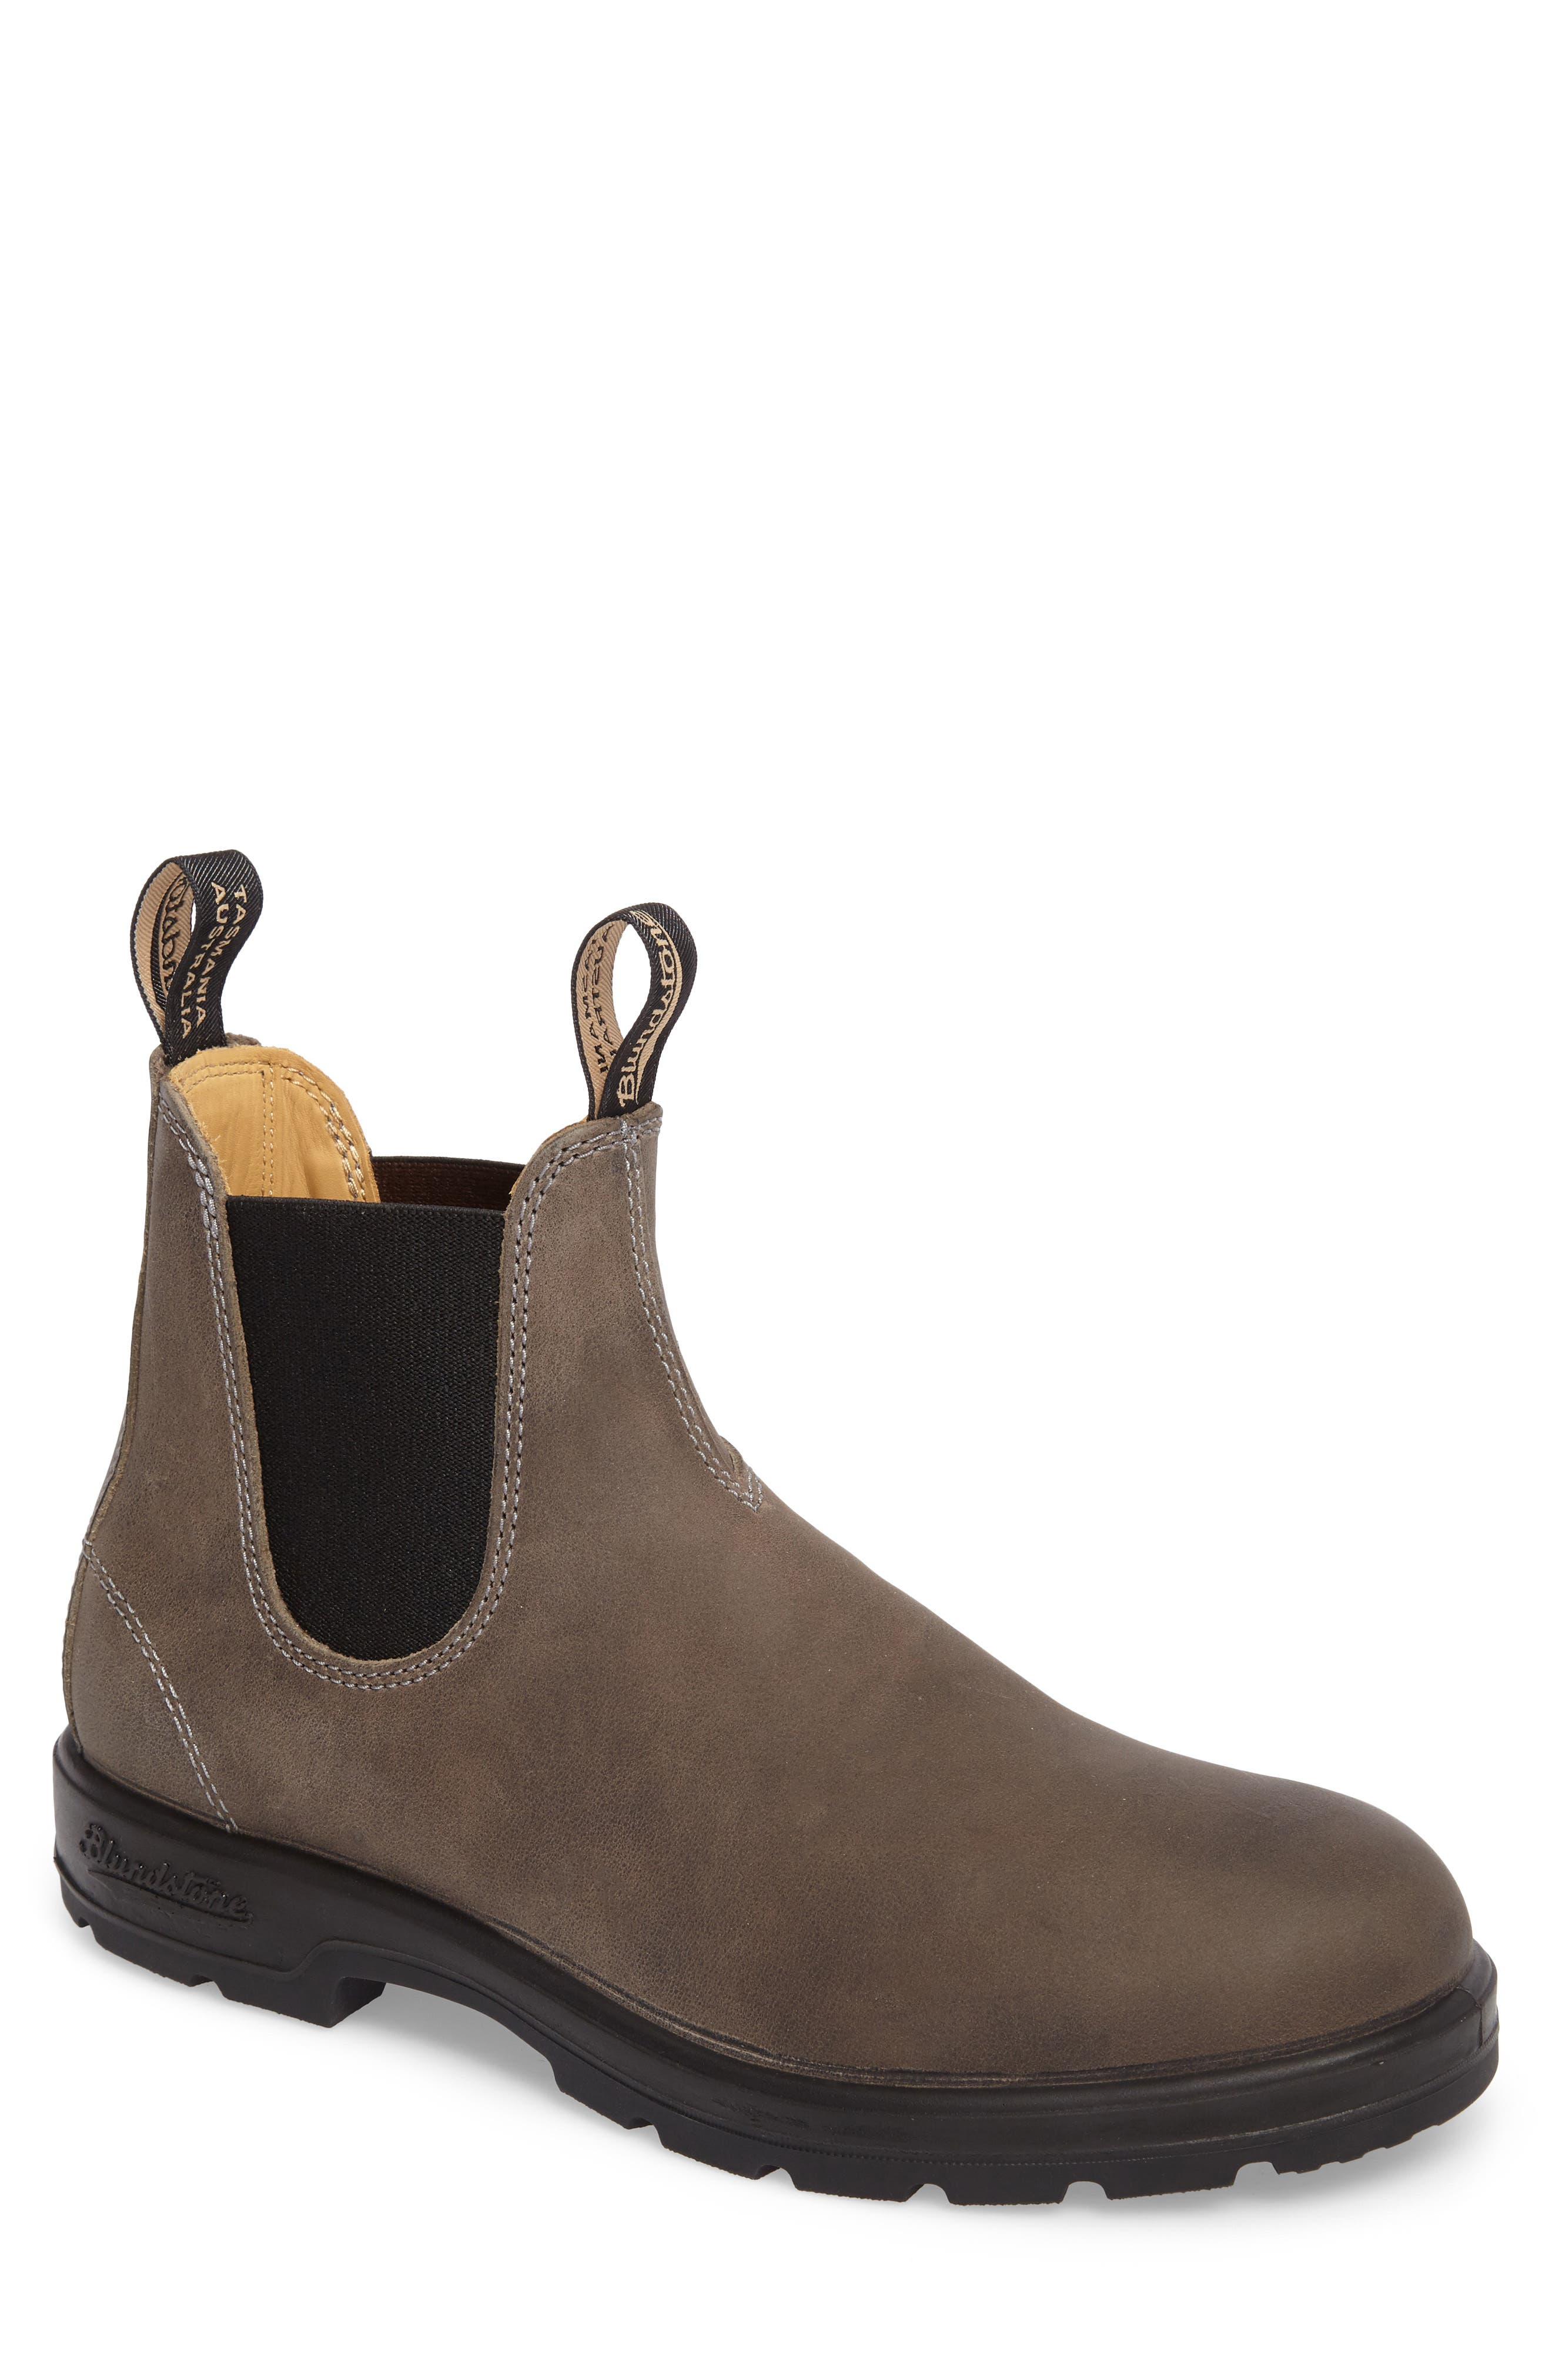 Footwear Chelsea Boot,                         Main,                         color, Steel Grey Leather